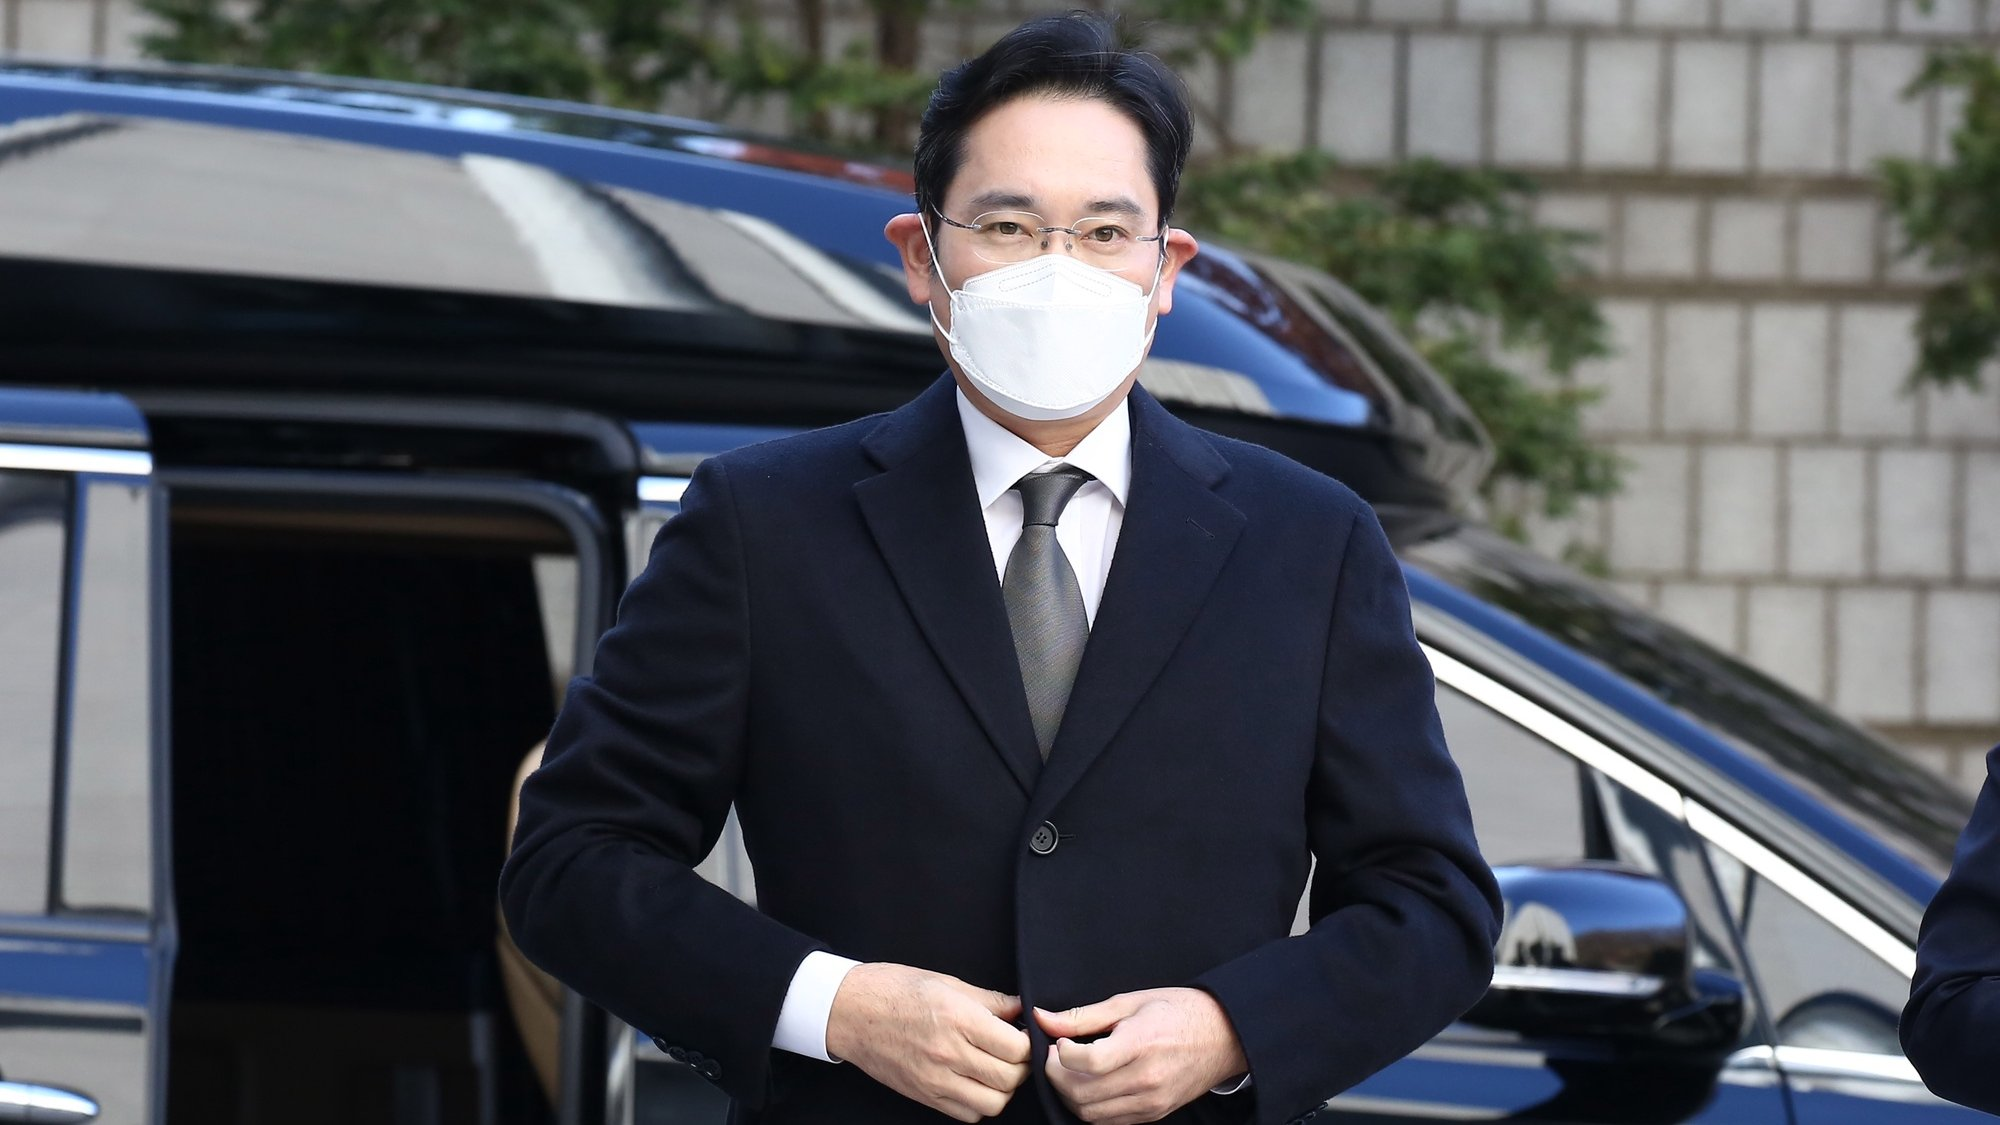 epa08852325 Lee Jae-yong, vice chairman of Samsung Group, arrives to attend a court hearing to review at the Seoul High Court in Seoul, South Korea, 30 November 2020.  EPA/KIM CHUL-SOO